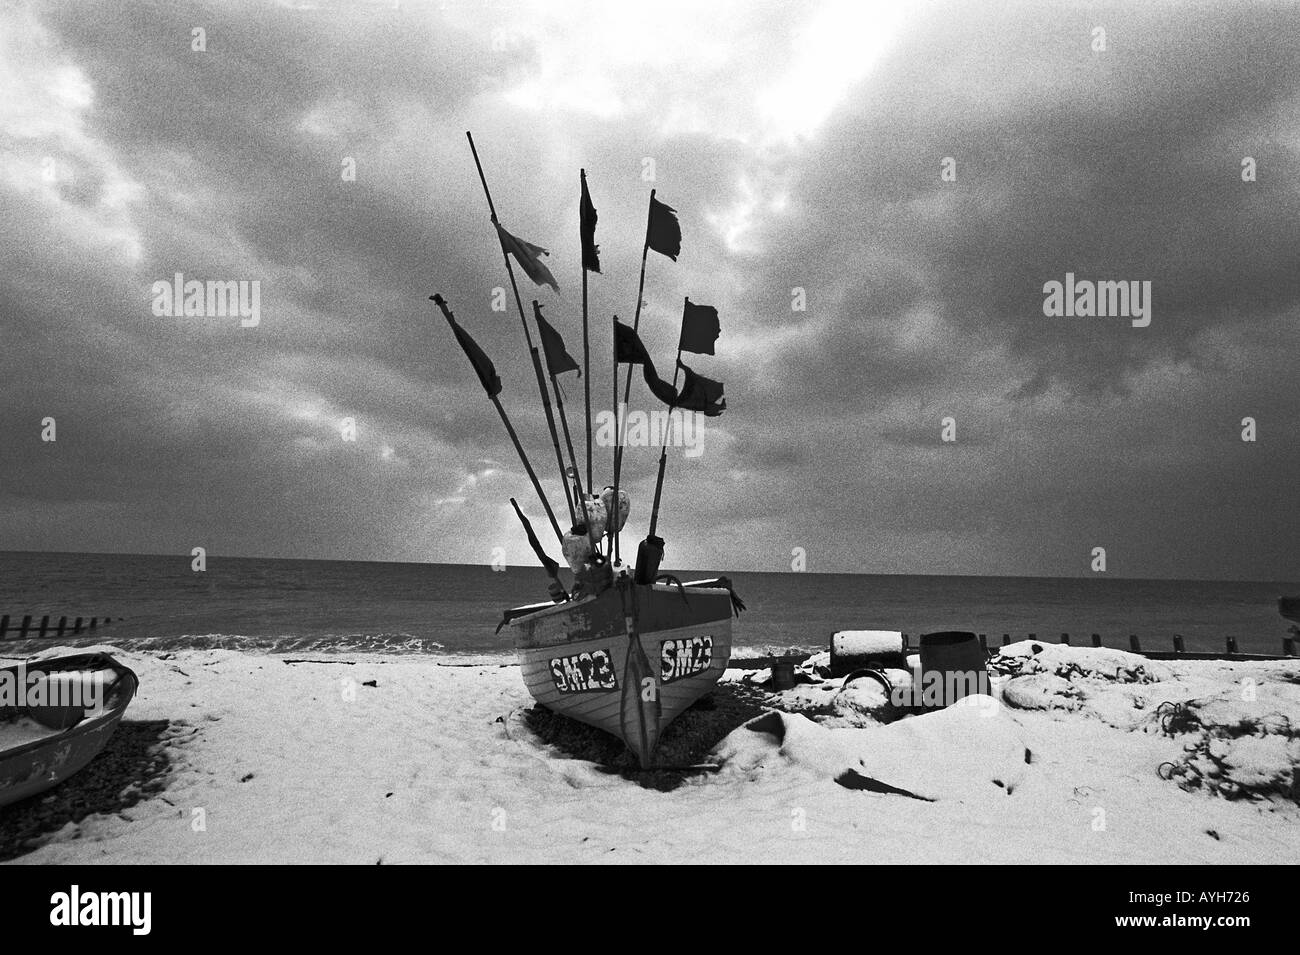 A fishing boat dusted with snow on Brighton beach - Stock Image